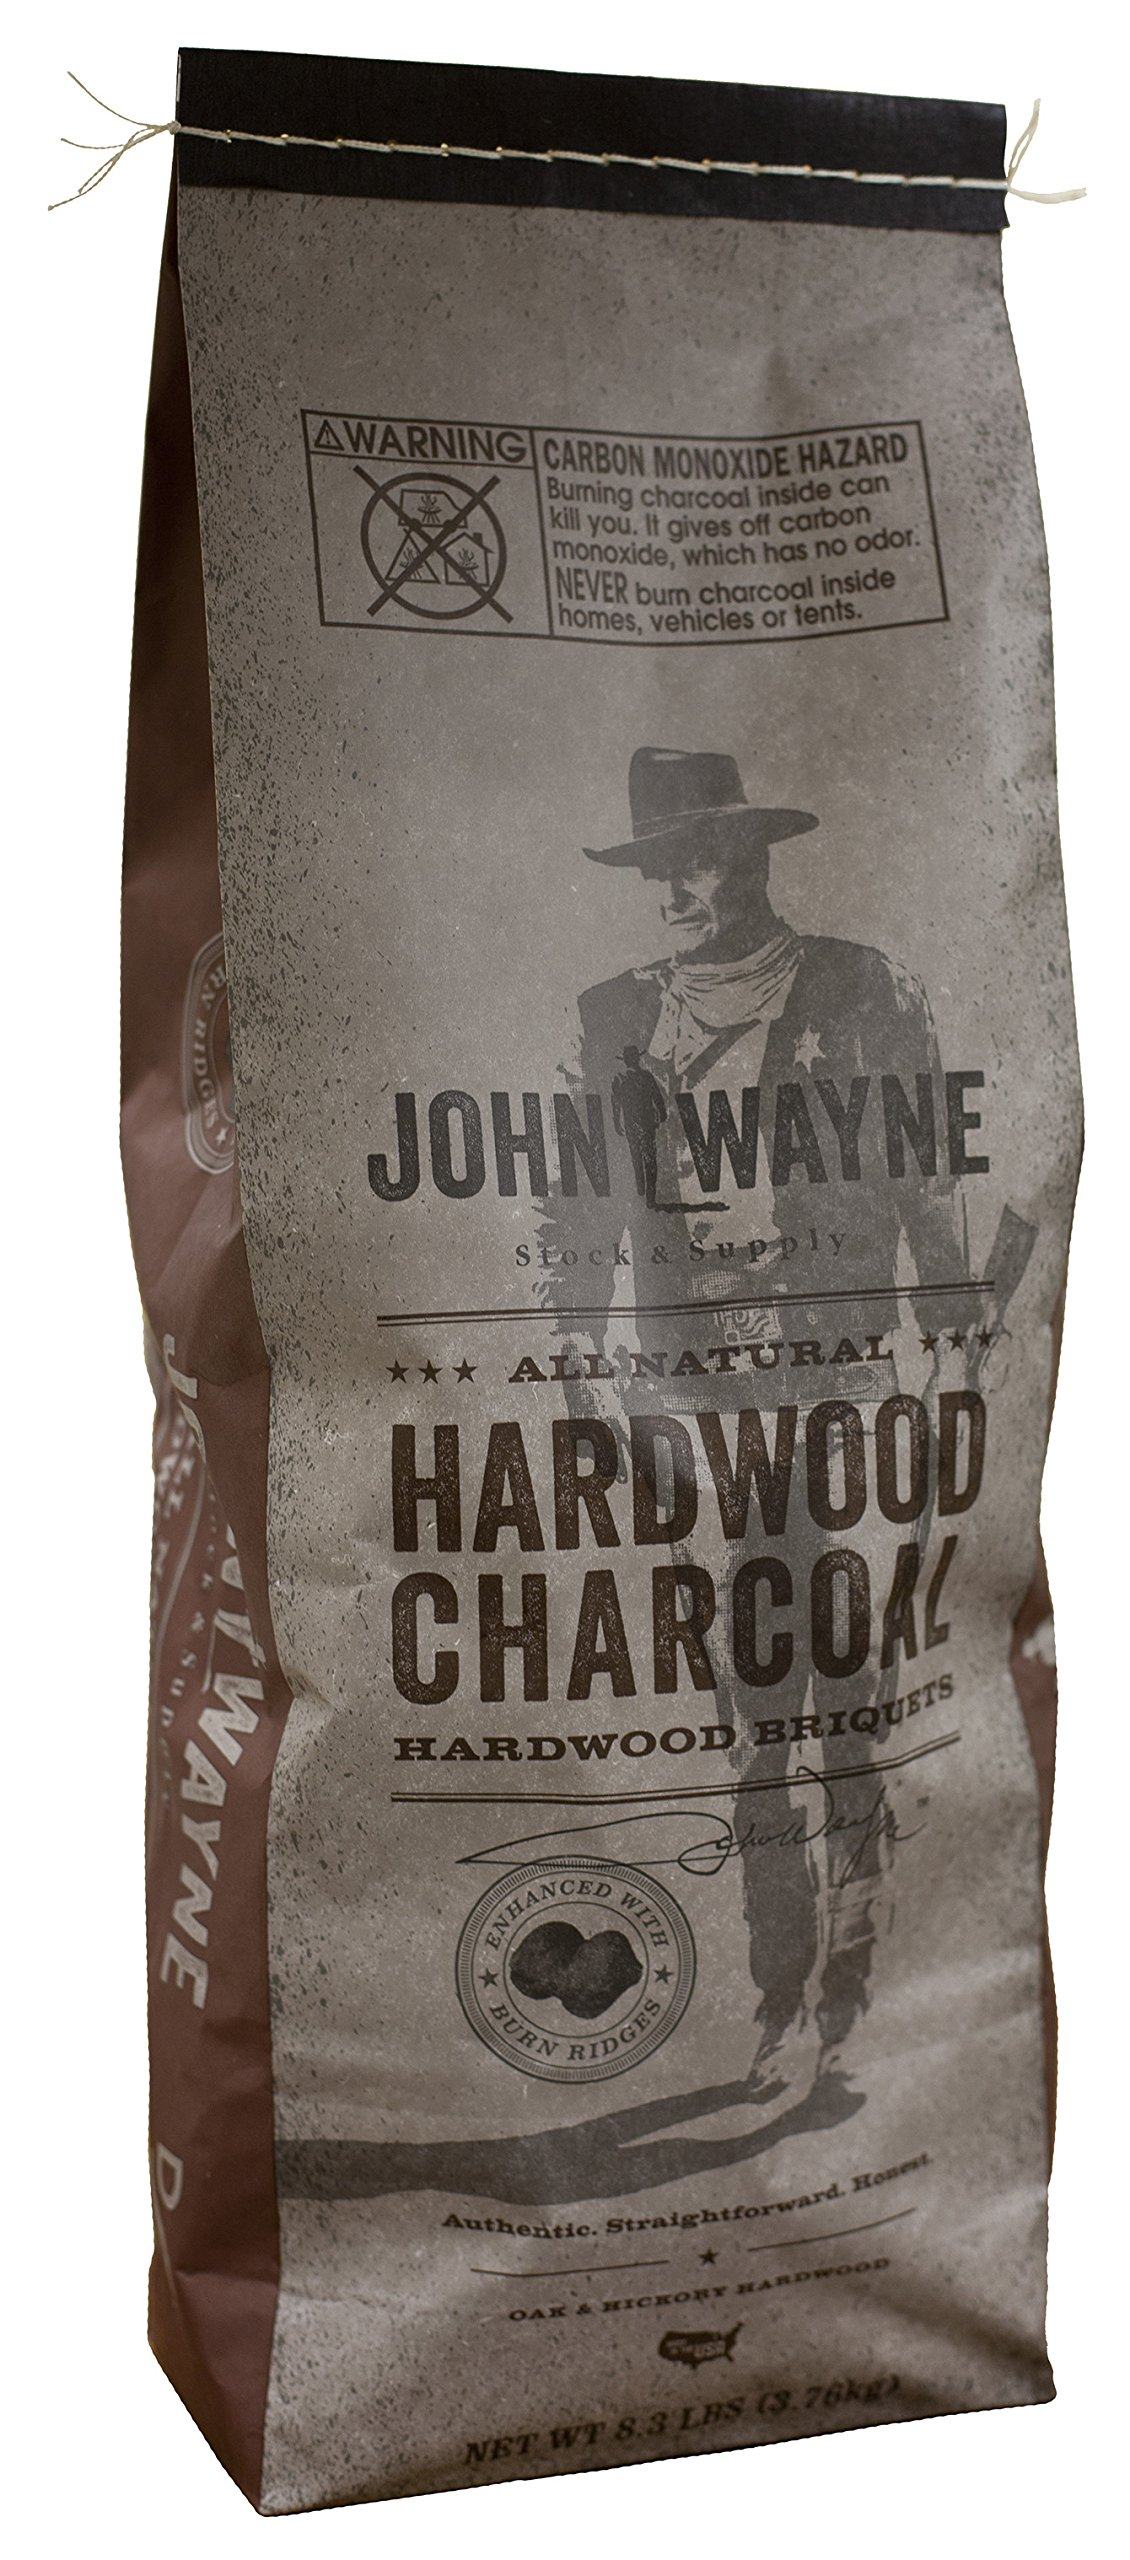 Fire & Flavor John Wayne Collection All Natural Hardwood Charcoal Briquets, 8.3 Pound Bag, Pack of 2 by Fire & Flavor